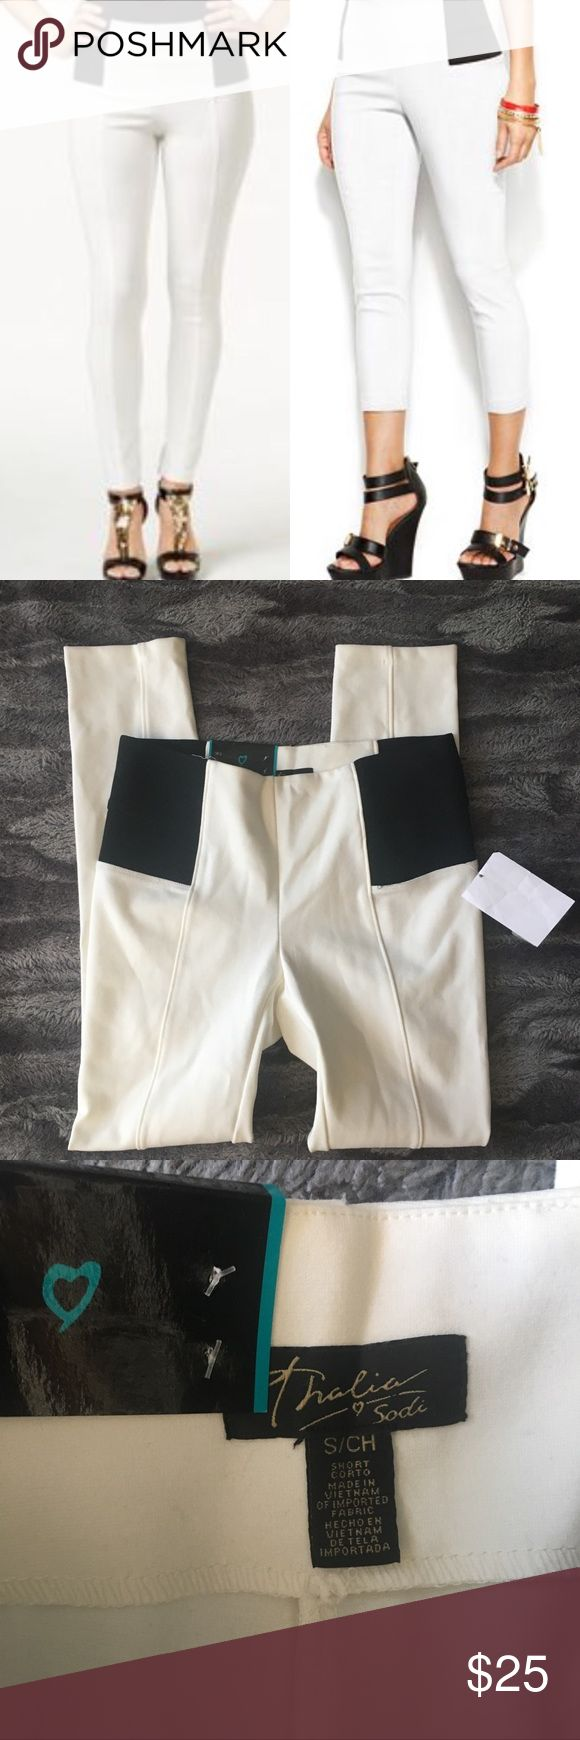 "Skinny leg Capri leggings Waist: 14.5"" total length 37"" inseam 26"".      📊Use size chart for fit  🚫modeling or trades (askers will be ignored) or lowballing  ✅ will consider offers made through BLUE offer button.   ✅ bundle 3 or more items for a custom offer using bundle feature 🌻 Social media: Business Instagram @lovelyinlilacofficial Thalia Sodi Pants Leggings"